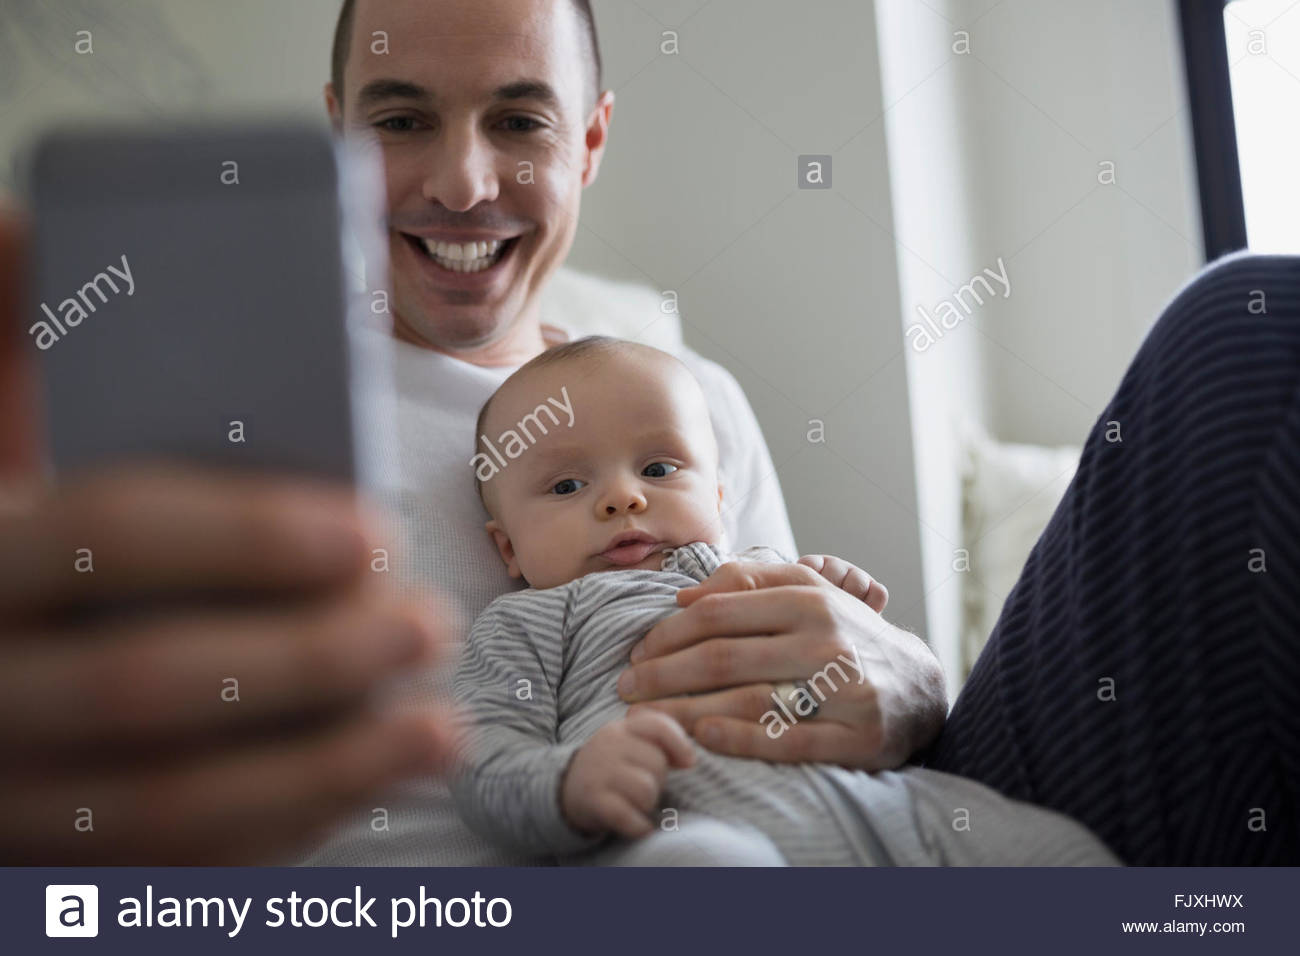 Smiling father and baby son taking selfie - Stock Image